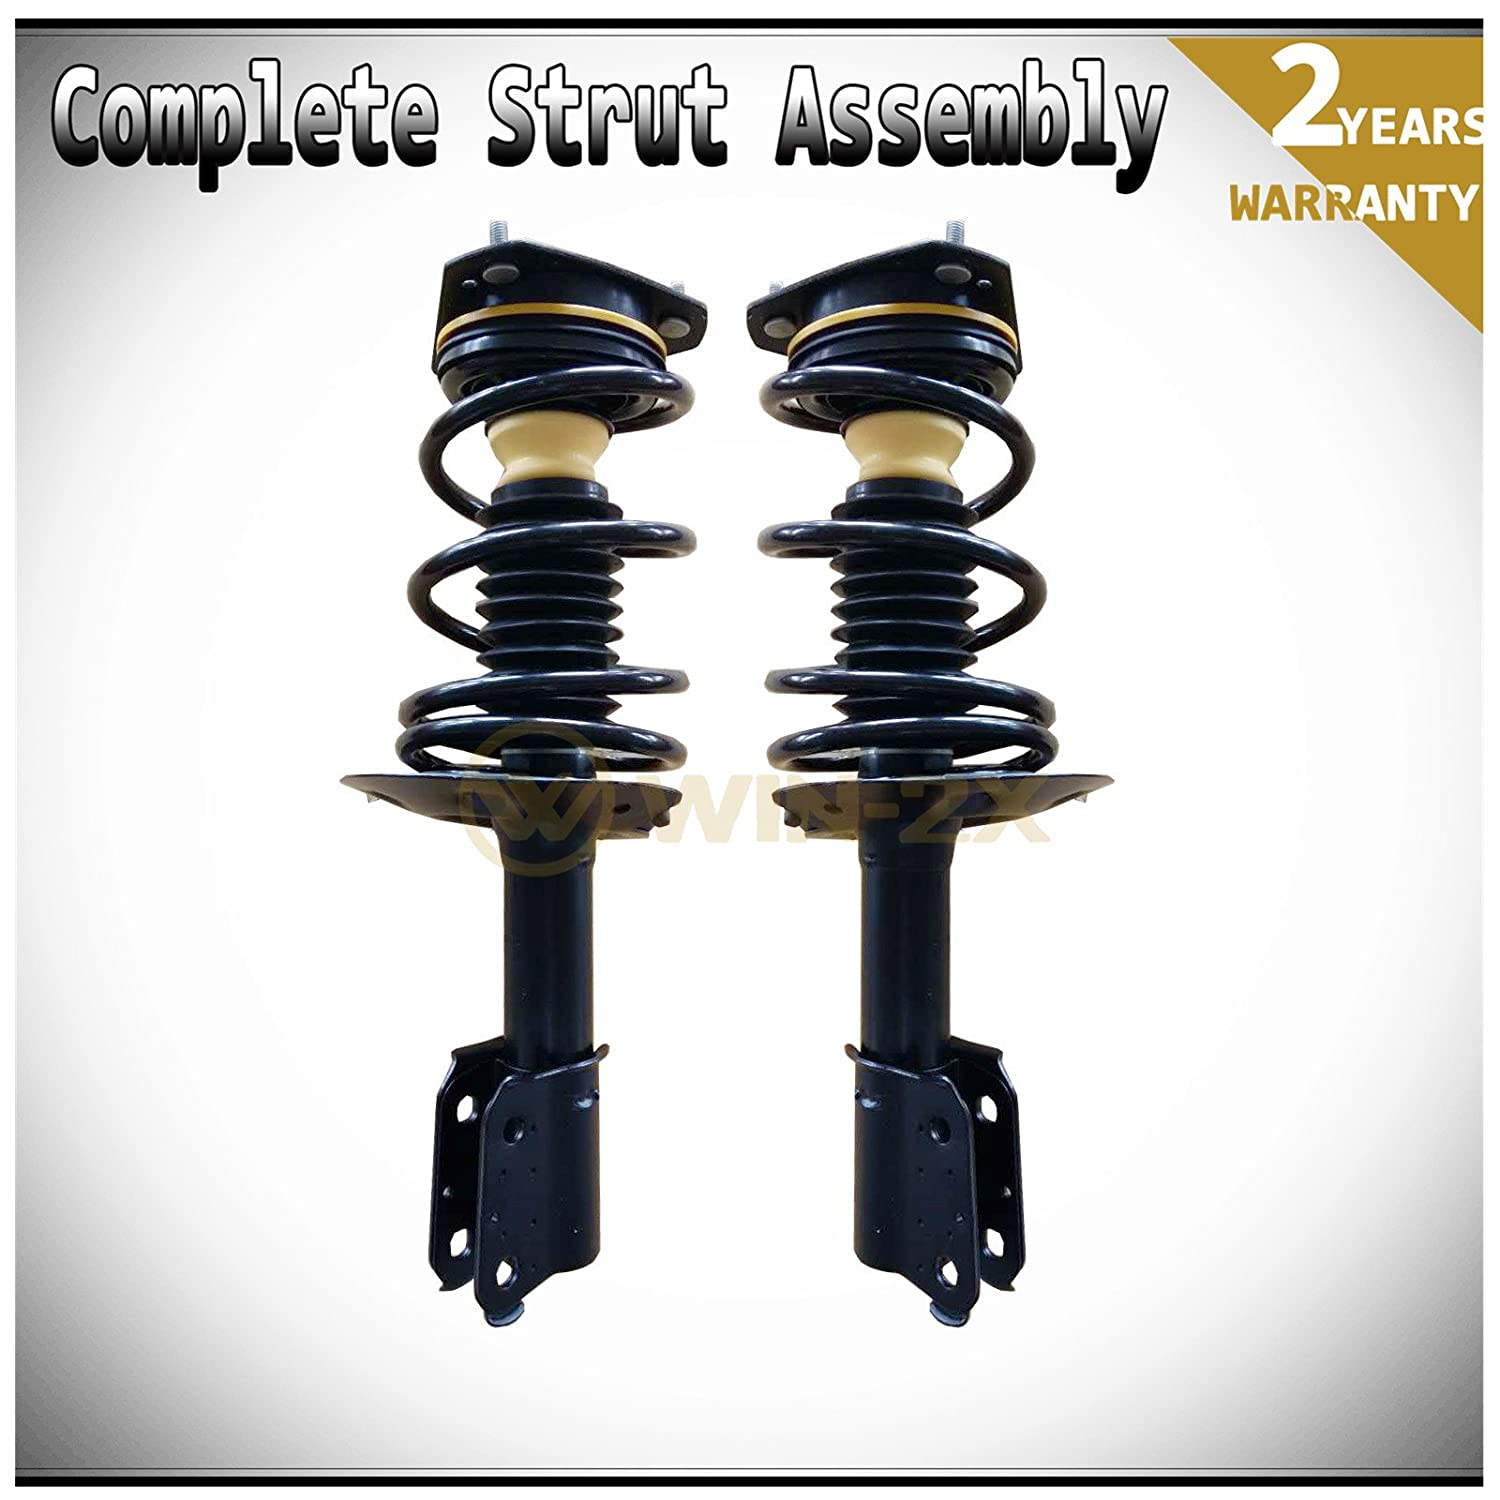 WIN-2X New 2pcs Front Left+Right Quick Complete Suspension Shock Struts & Coil Springs Assembly Kit Fit Buick/Pontiac/Chevy Century Regal Grand Prix Allure LaCrosse Monte Carlo Impala 16' & 17' Wheels